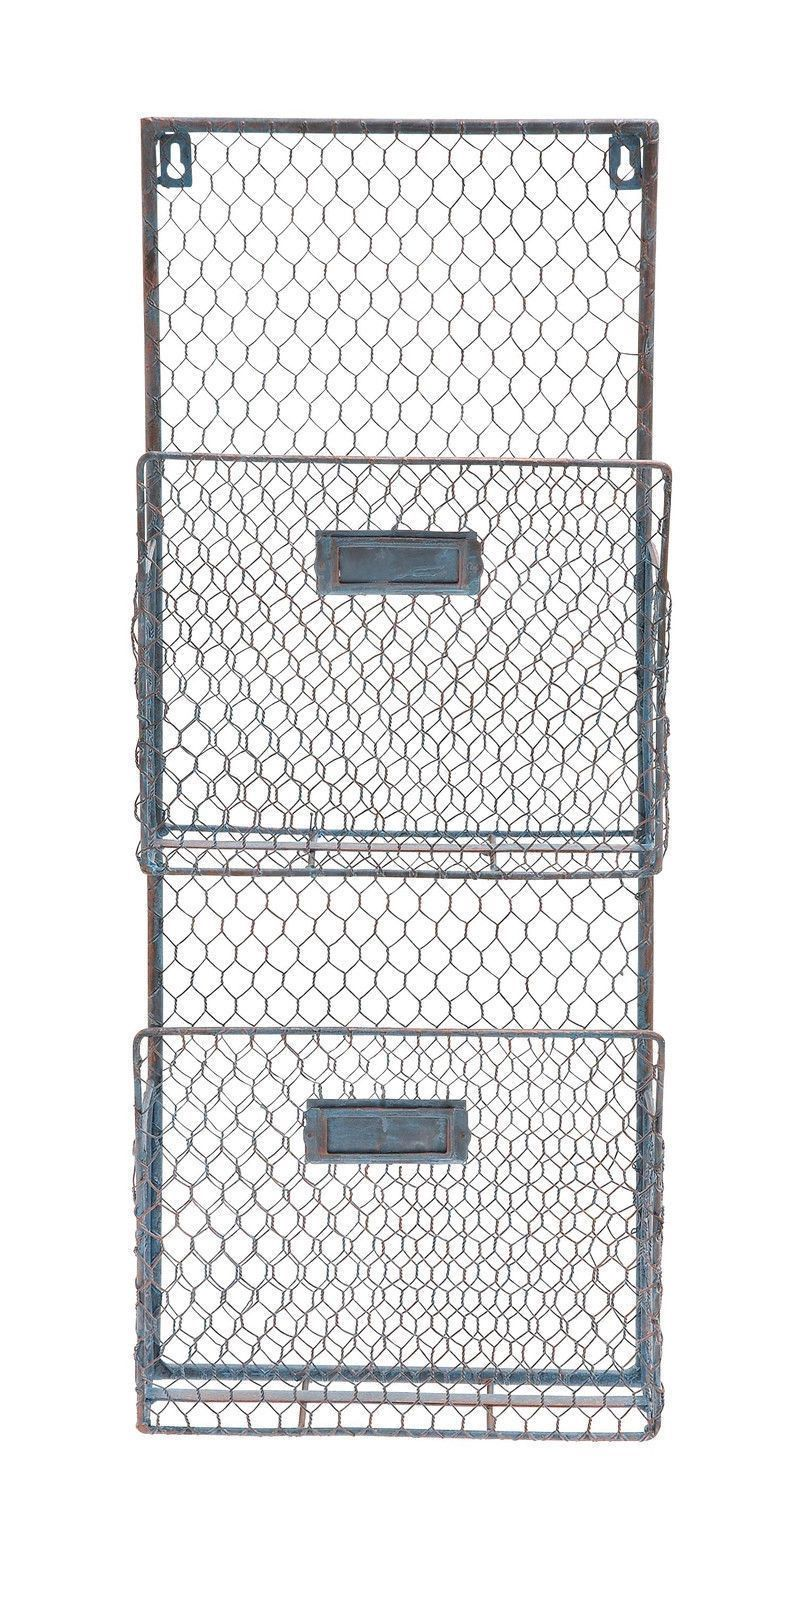 Gray Industrial Metal Wire Wall Basket 2 Pocket File Holder Office ...